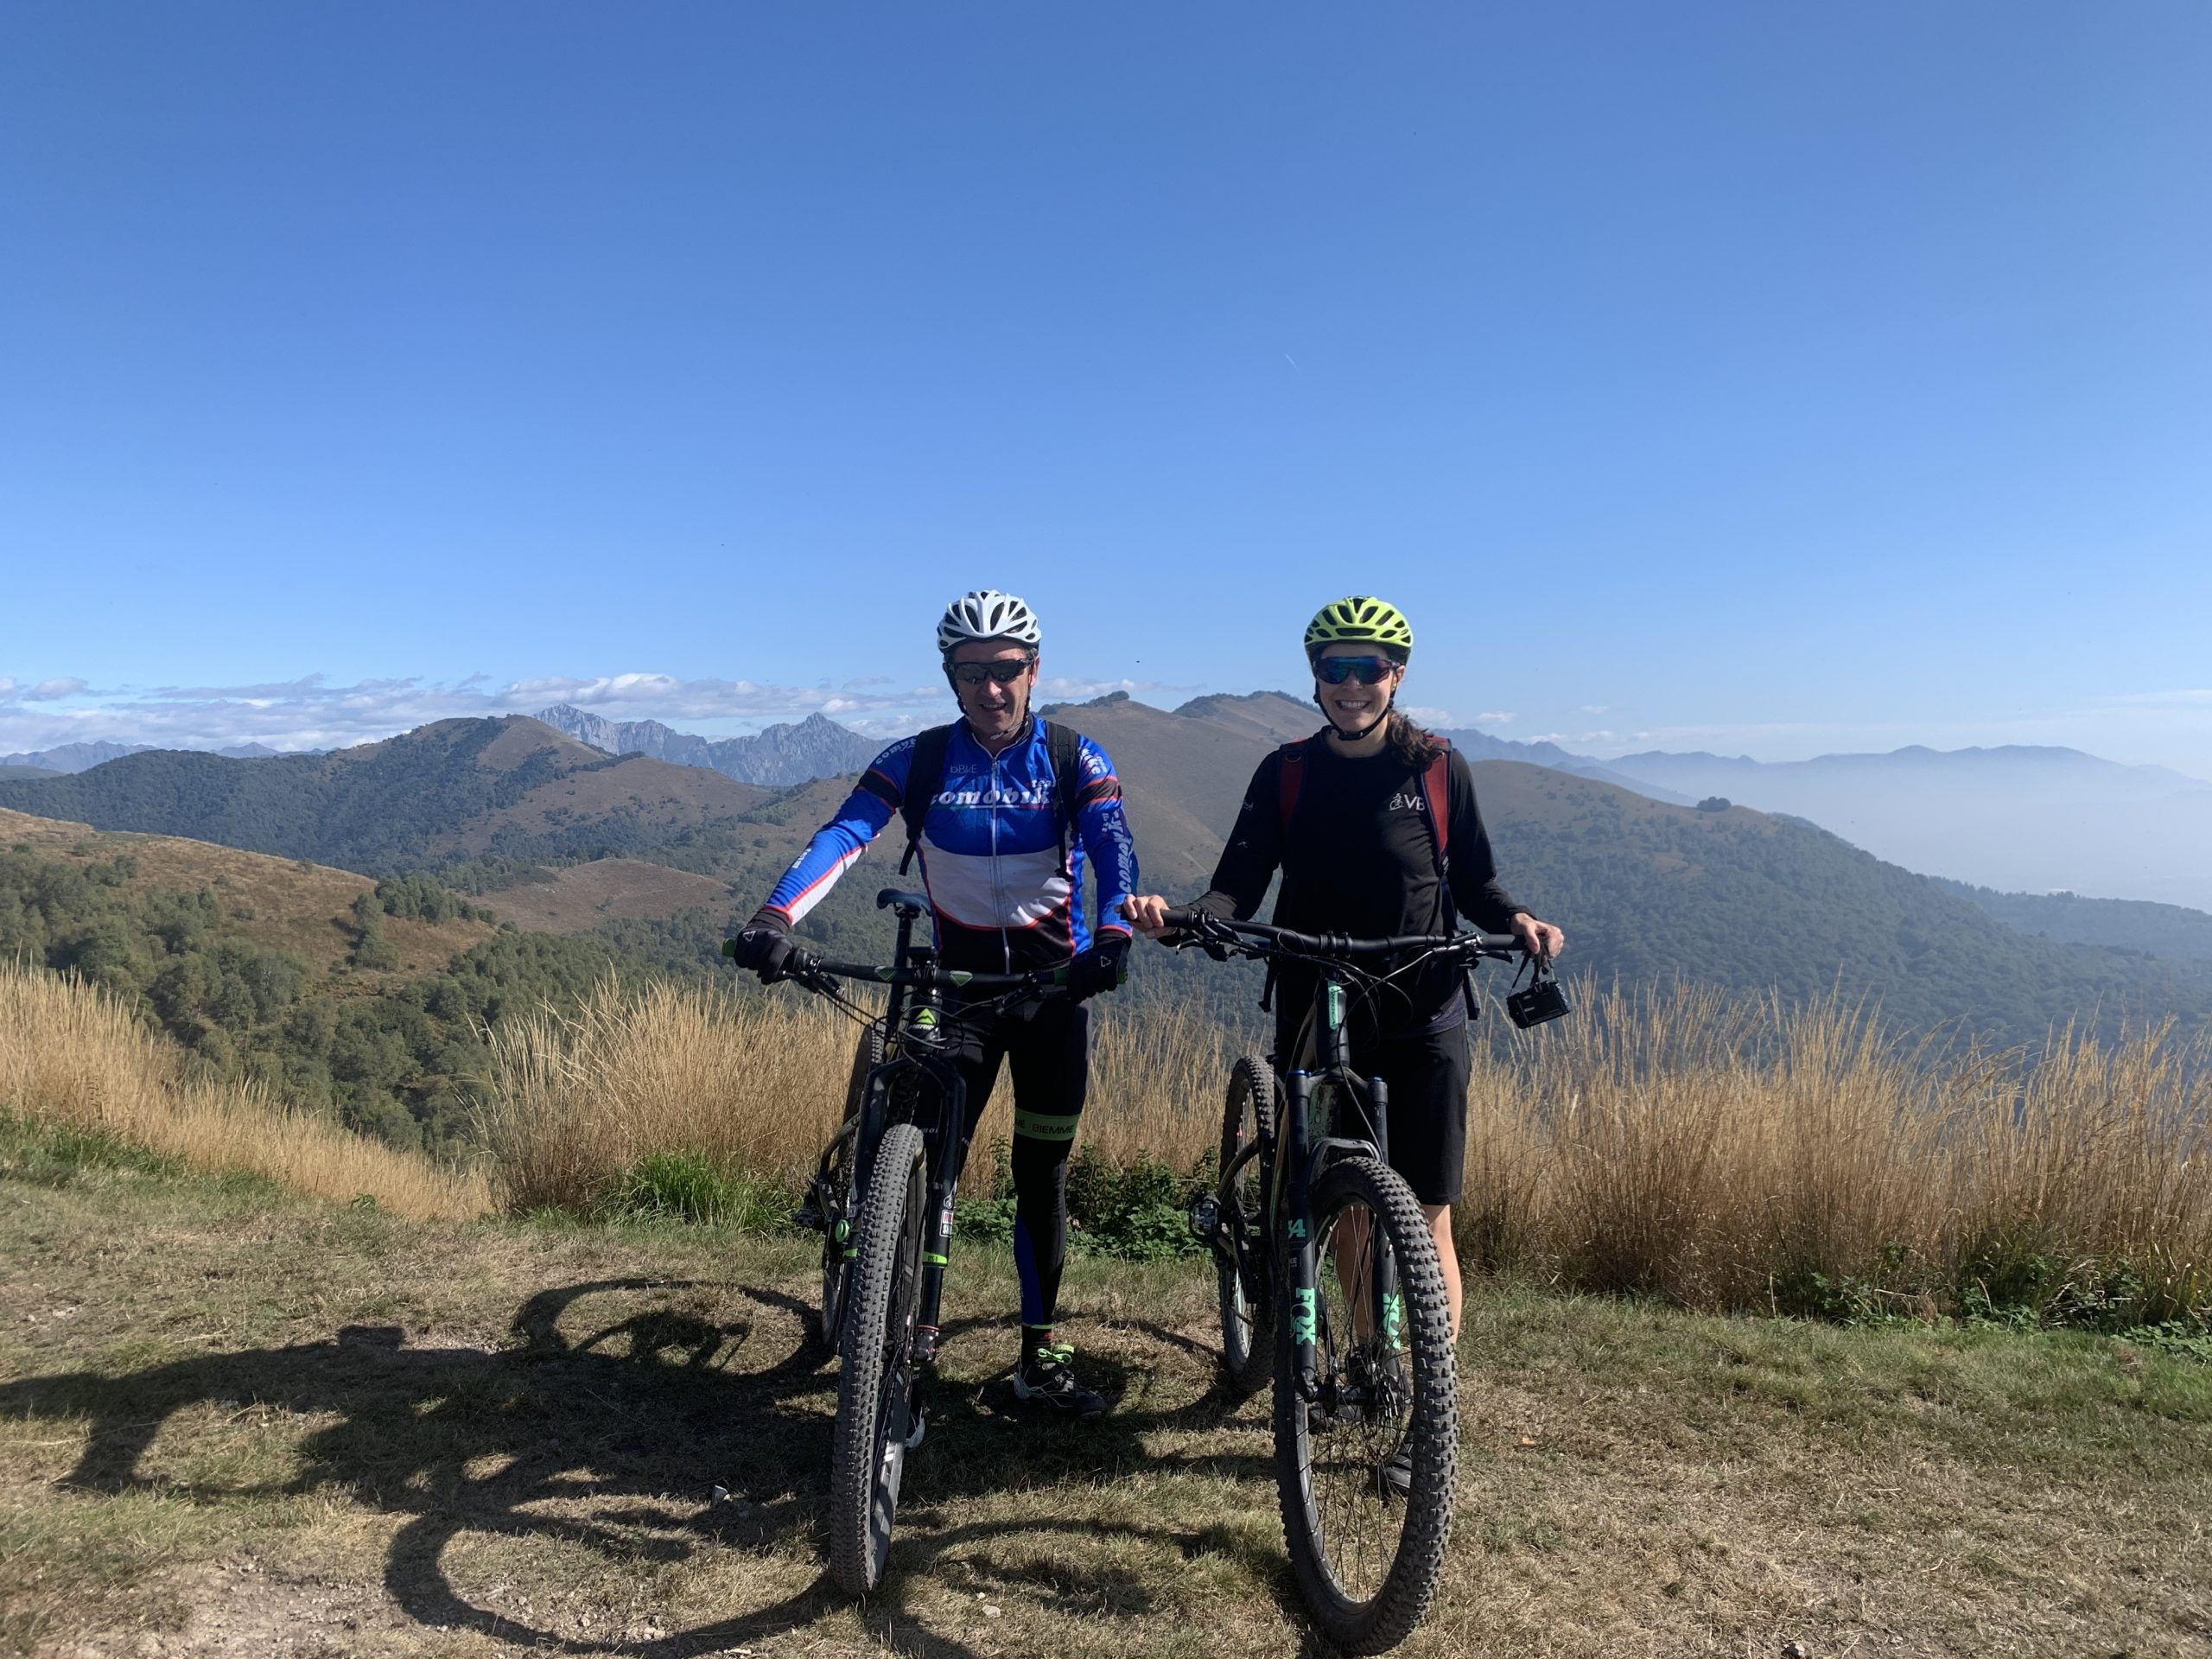 Ride Review: Biking Italy's Lake Como By E-Mountain Bike - Made it to the Top 1